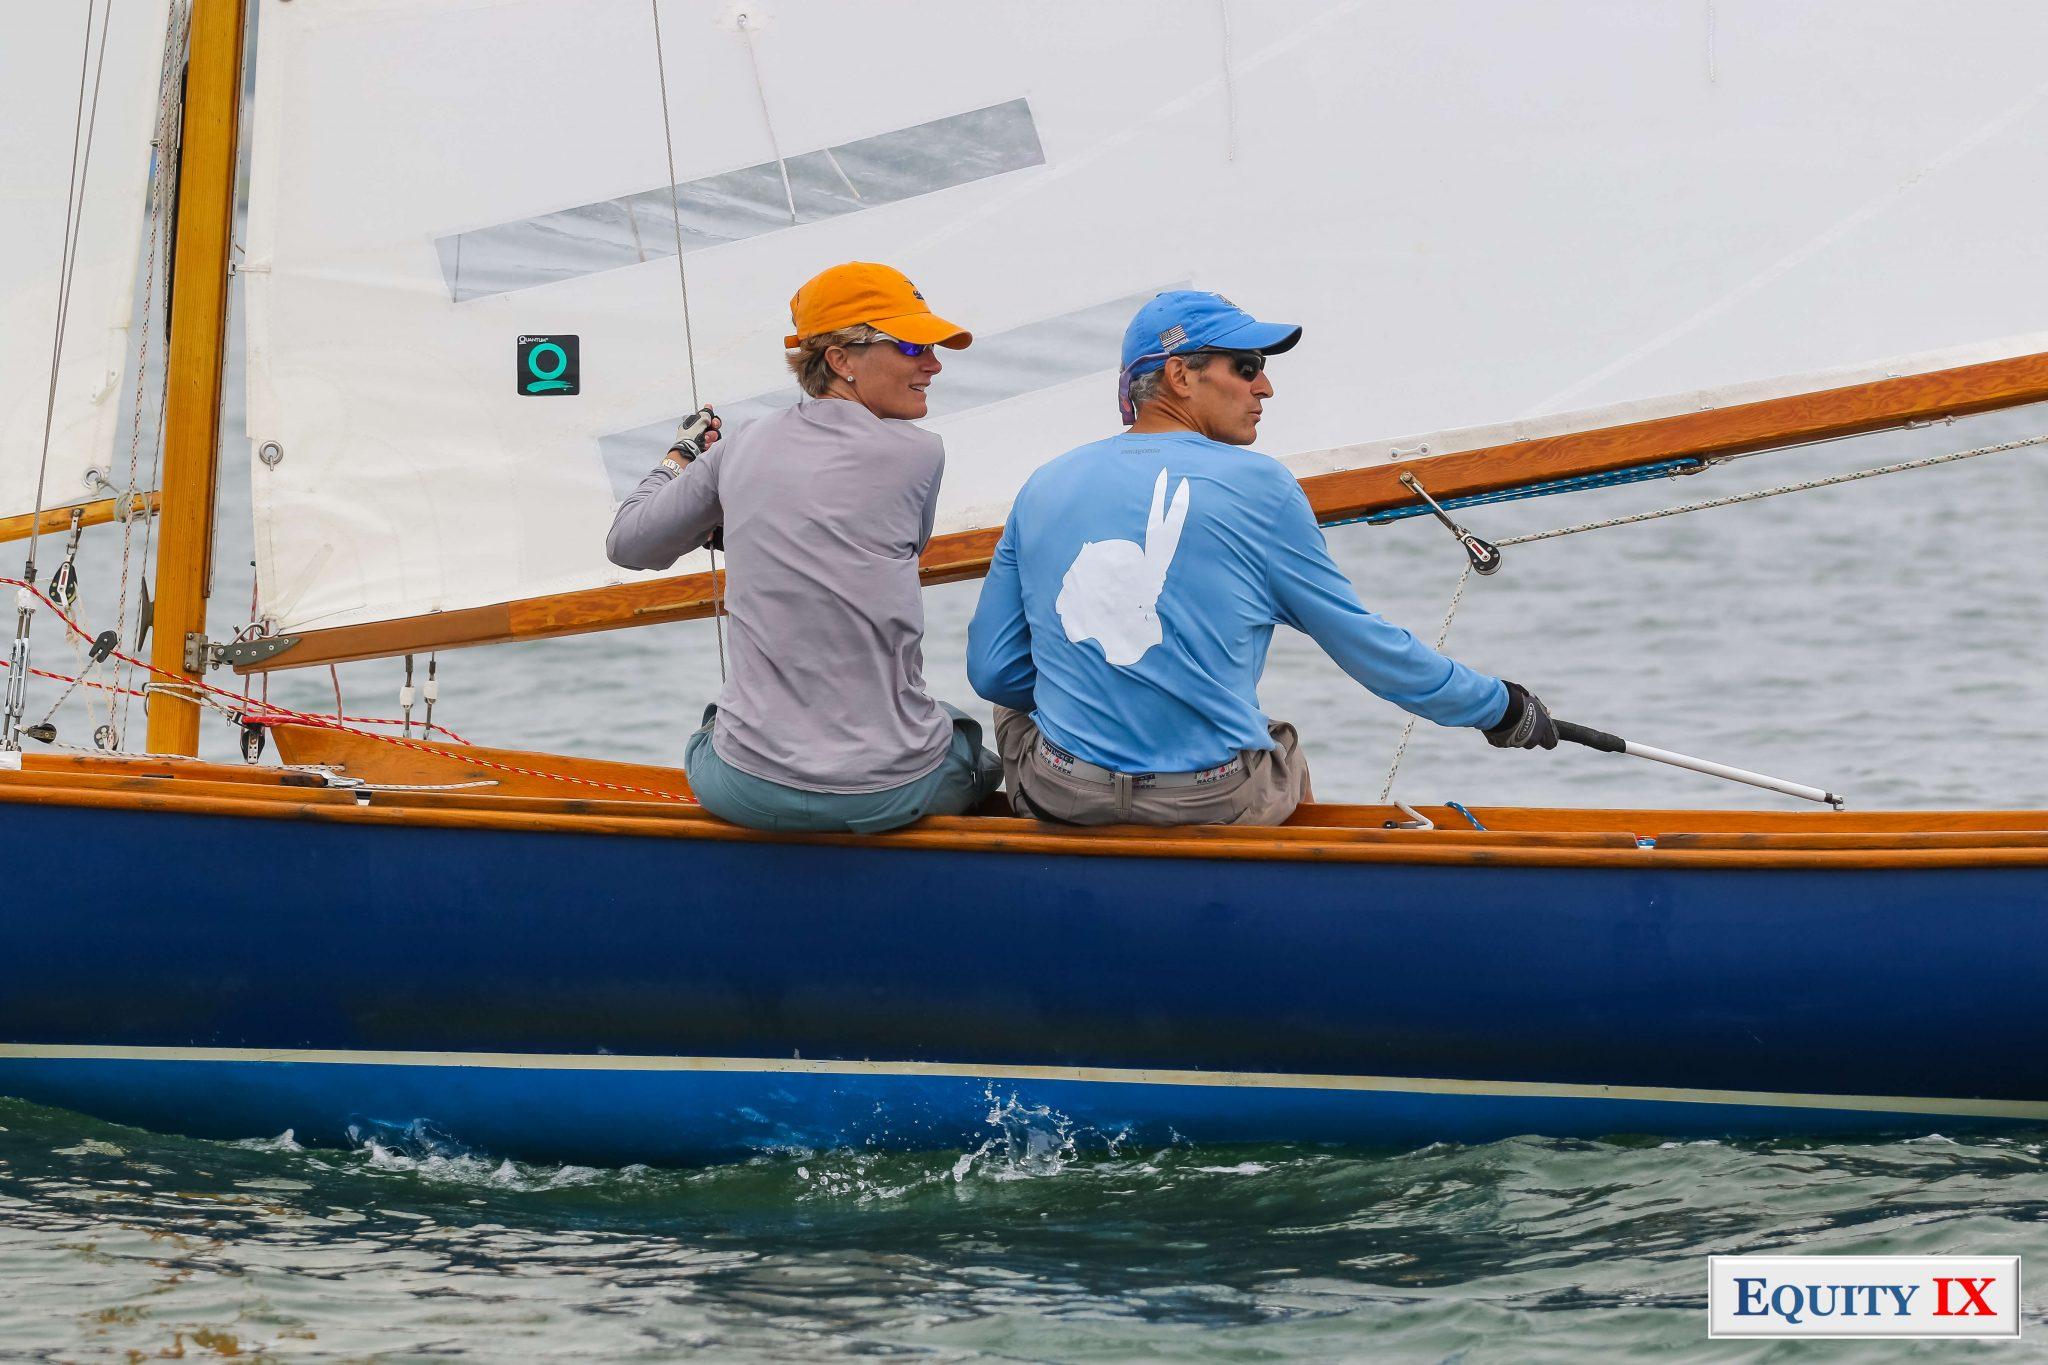 Indian fleet boat #36 Weweeder - helm Gregory Fowlkes and wife Annabelle hiking out of side of boat with yellow hat and sunglasses - Gregory has blue hat with matching blue and white Indian shirt - Sailing on Nantucket at Constable Cup - 2017 © Equity-IX - SportsOgram - Leigh Ernst Friestedt - ZyGoSports